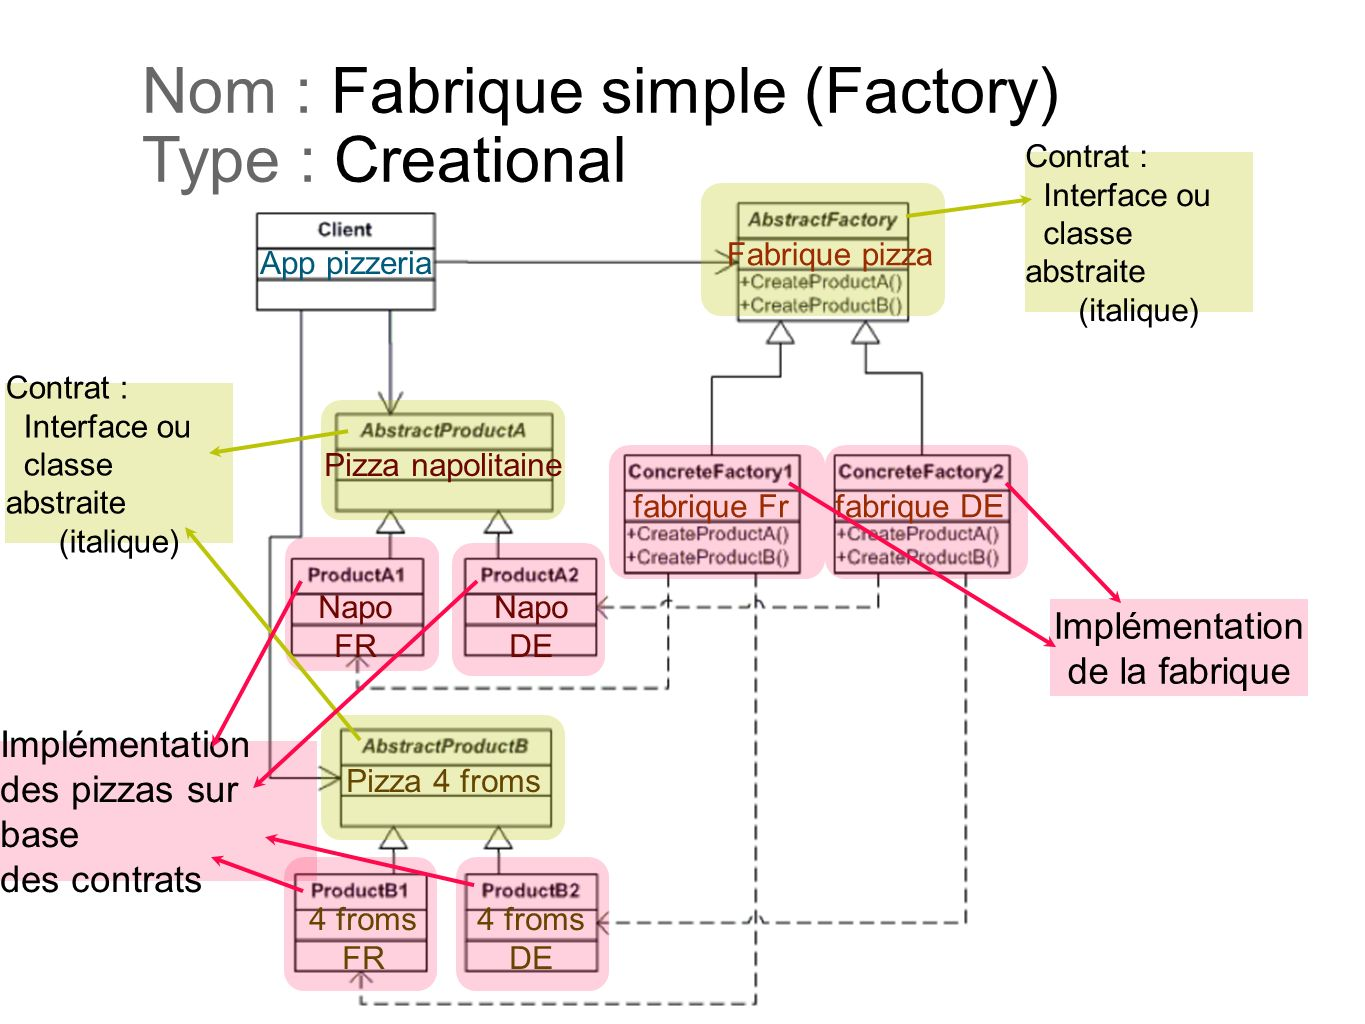 Nom : Fabrique simple (Factory) Type : Creational